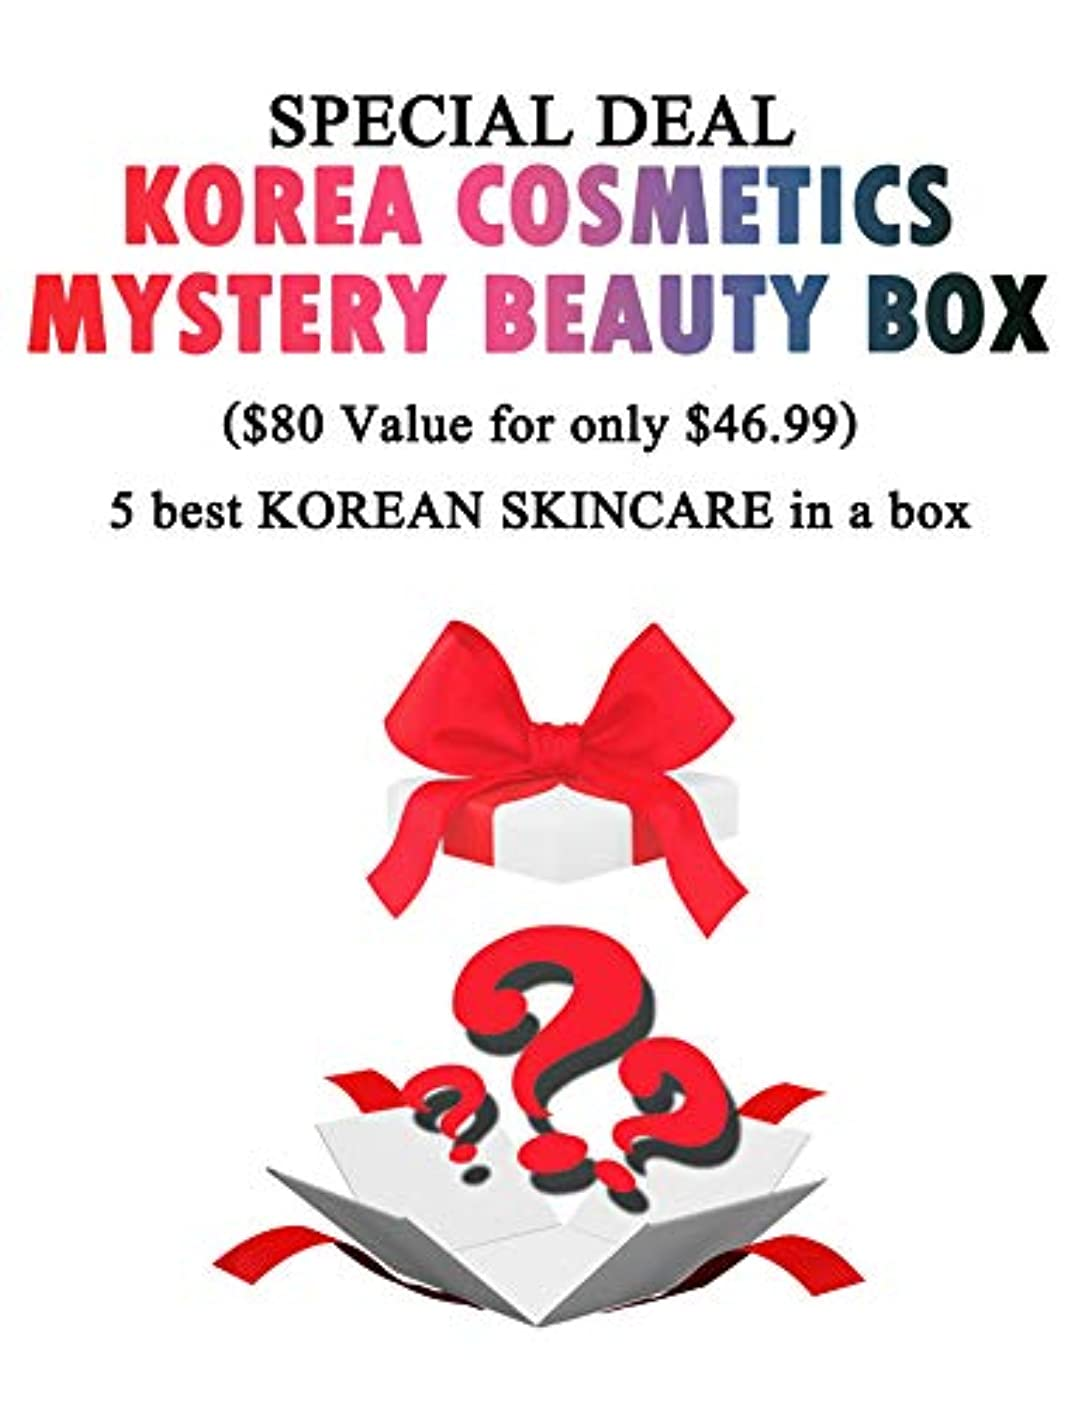 Mystery Beauty Box ミステリービューティーボックス 5 Best Korean Skincare Products in a Box 韓国コスメ スキンケア 5EA Surprise Gift box